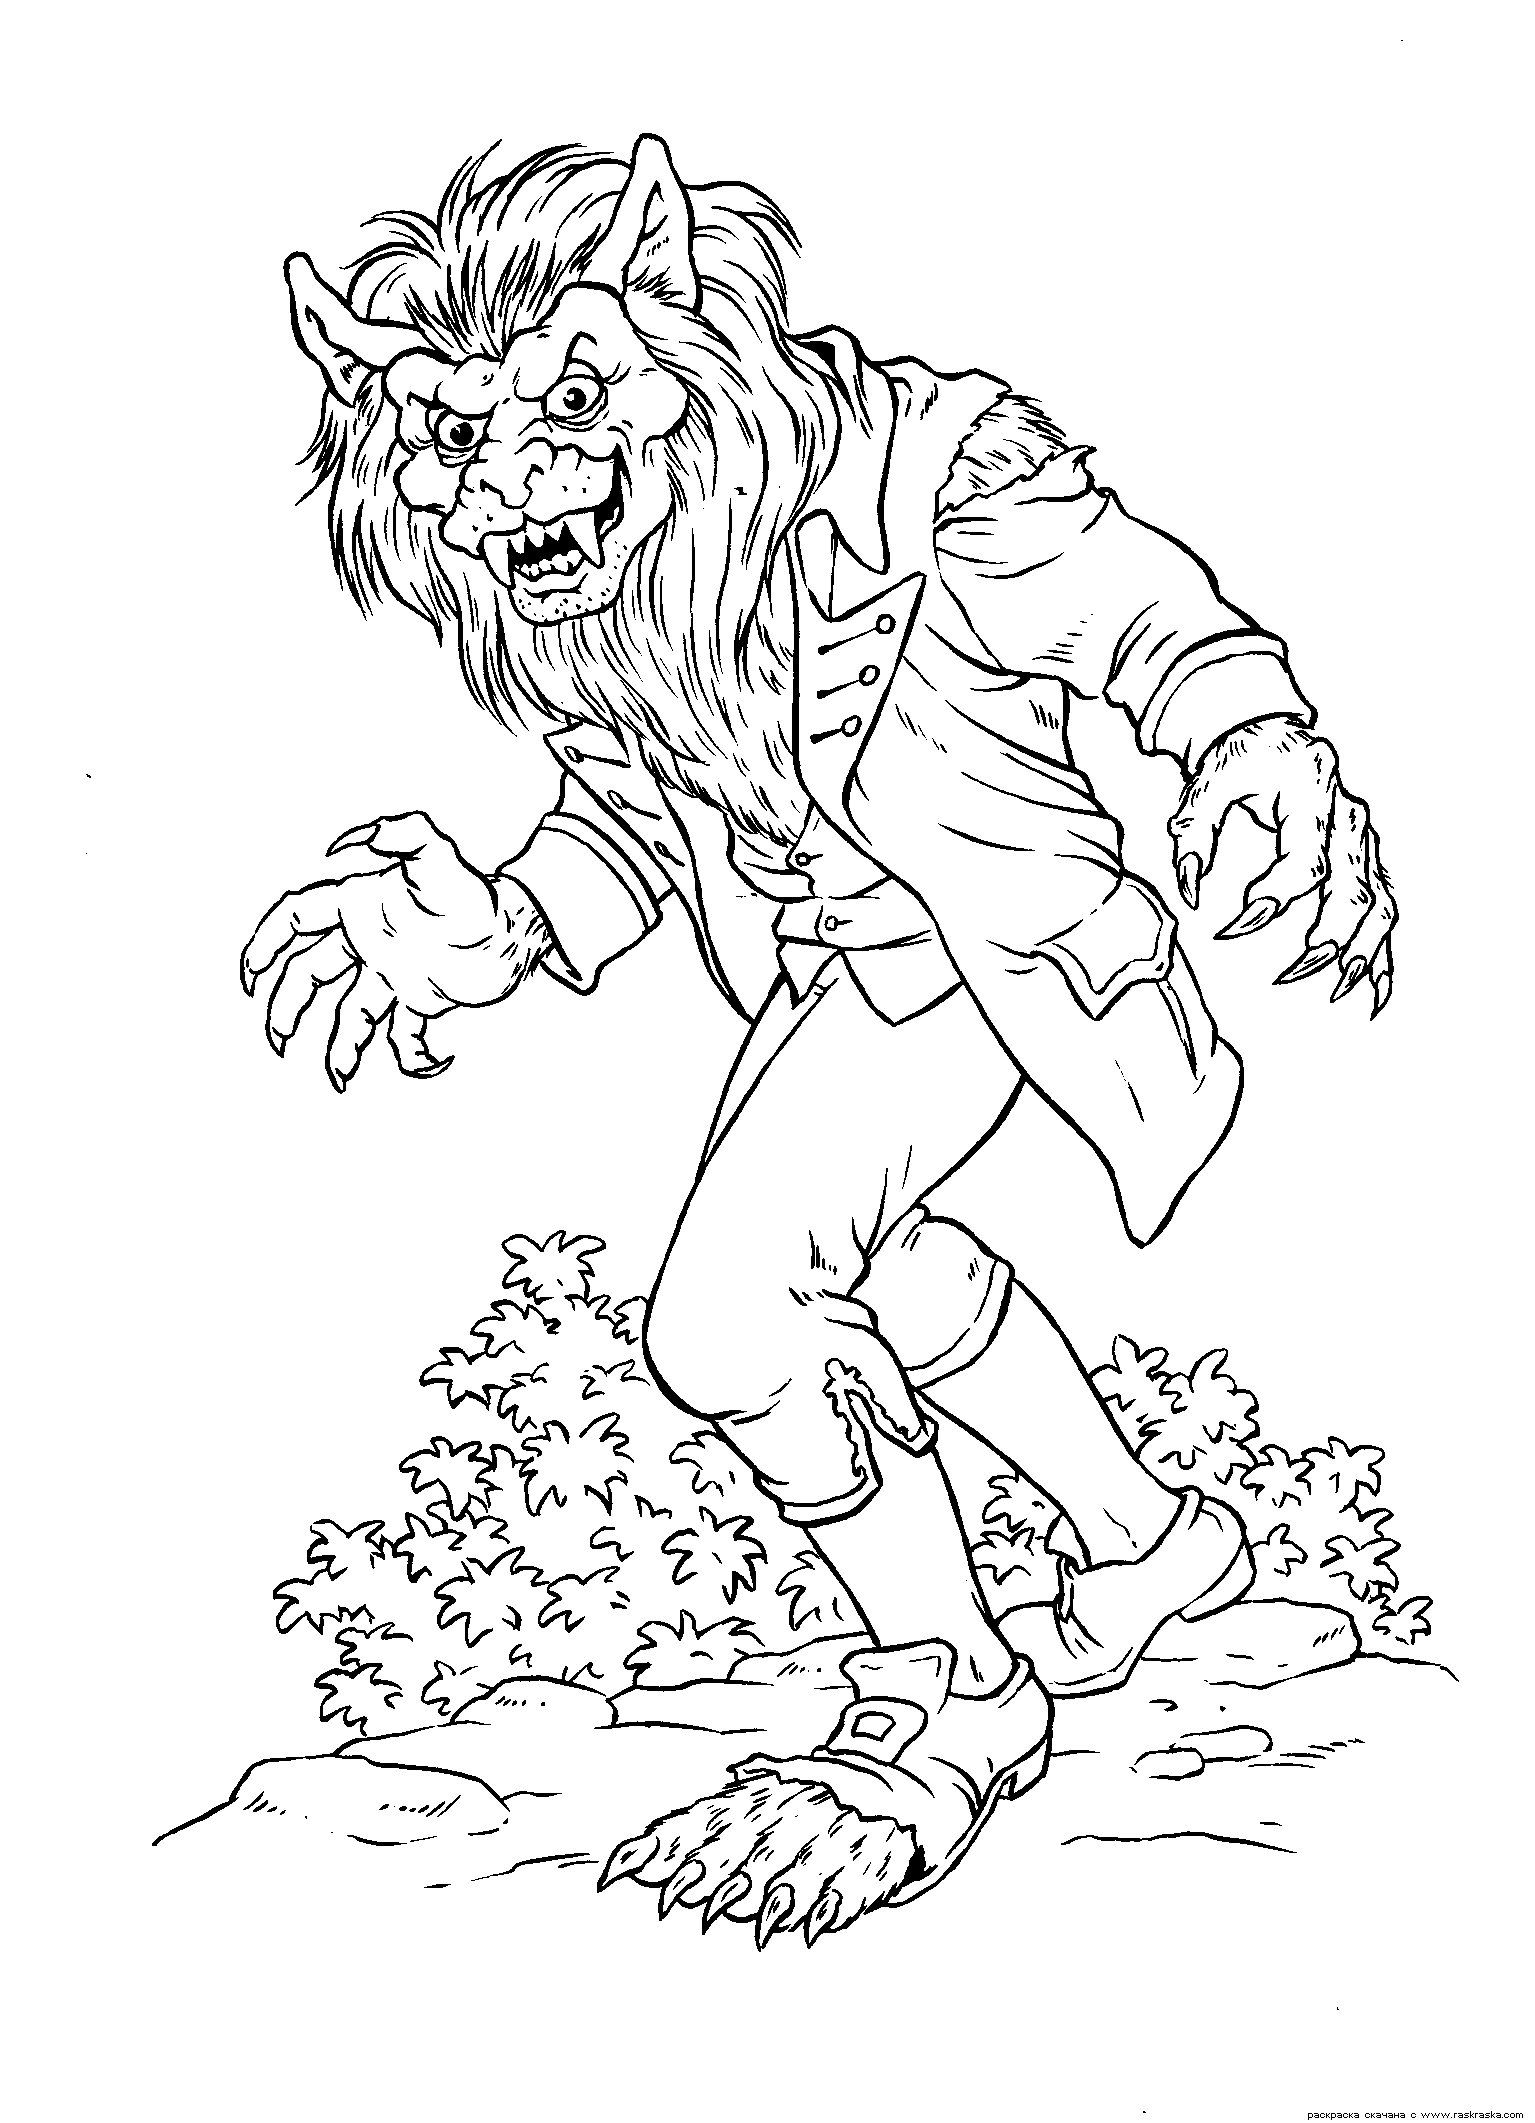 Werewolf Coloring Pages Google Search Halloween Coloring Pages Creepy Images Werewolf